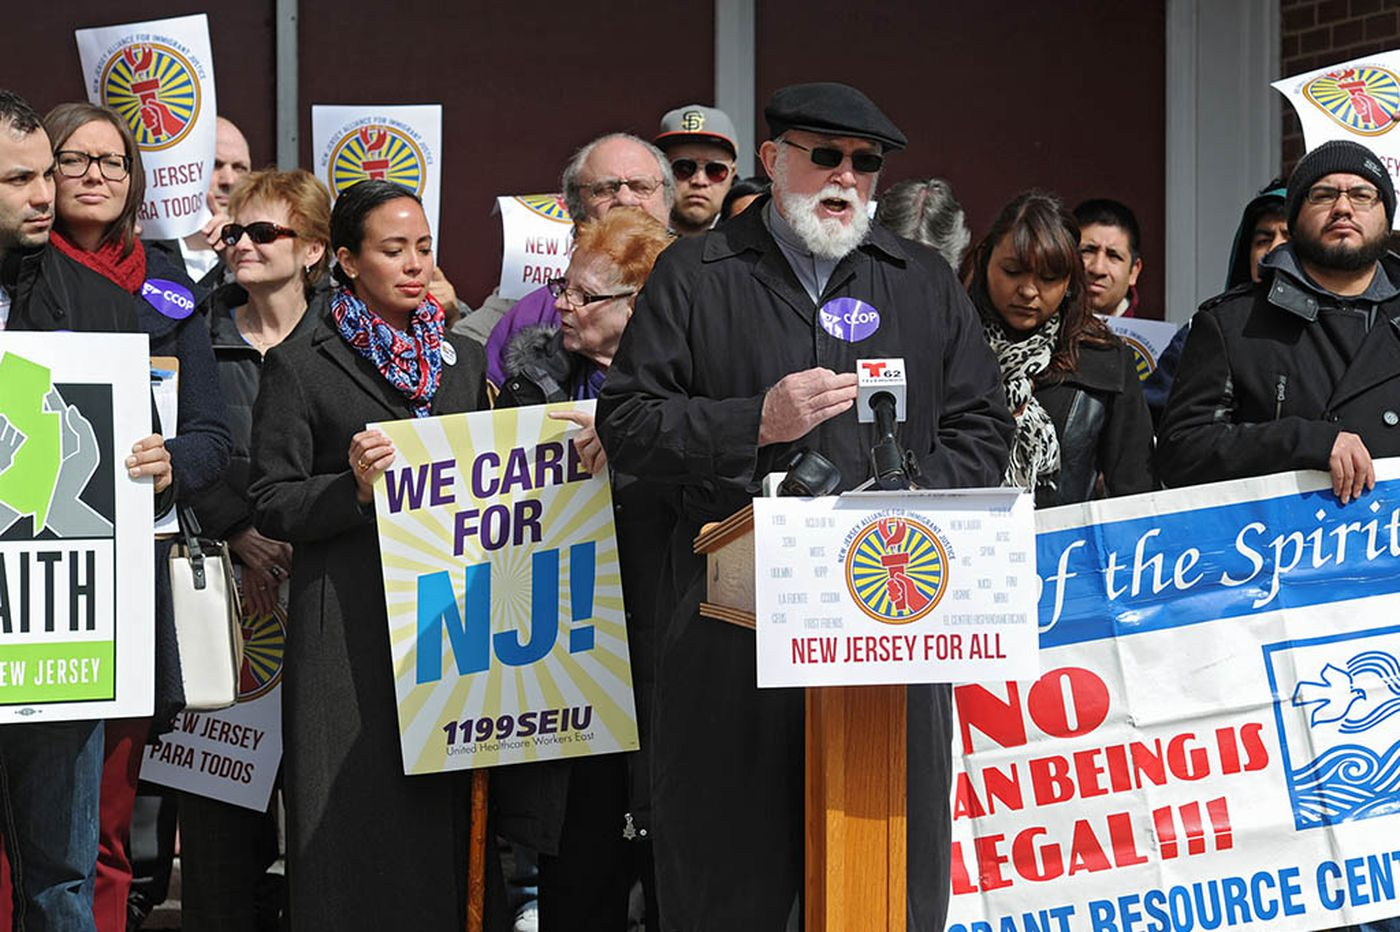 Immigration reform rally seeks a New Jersey for all